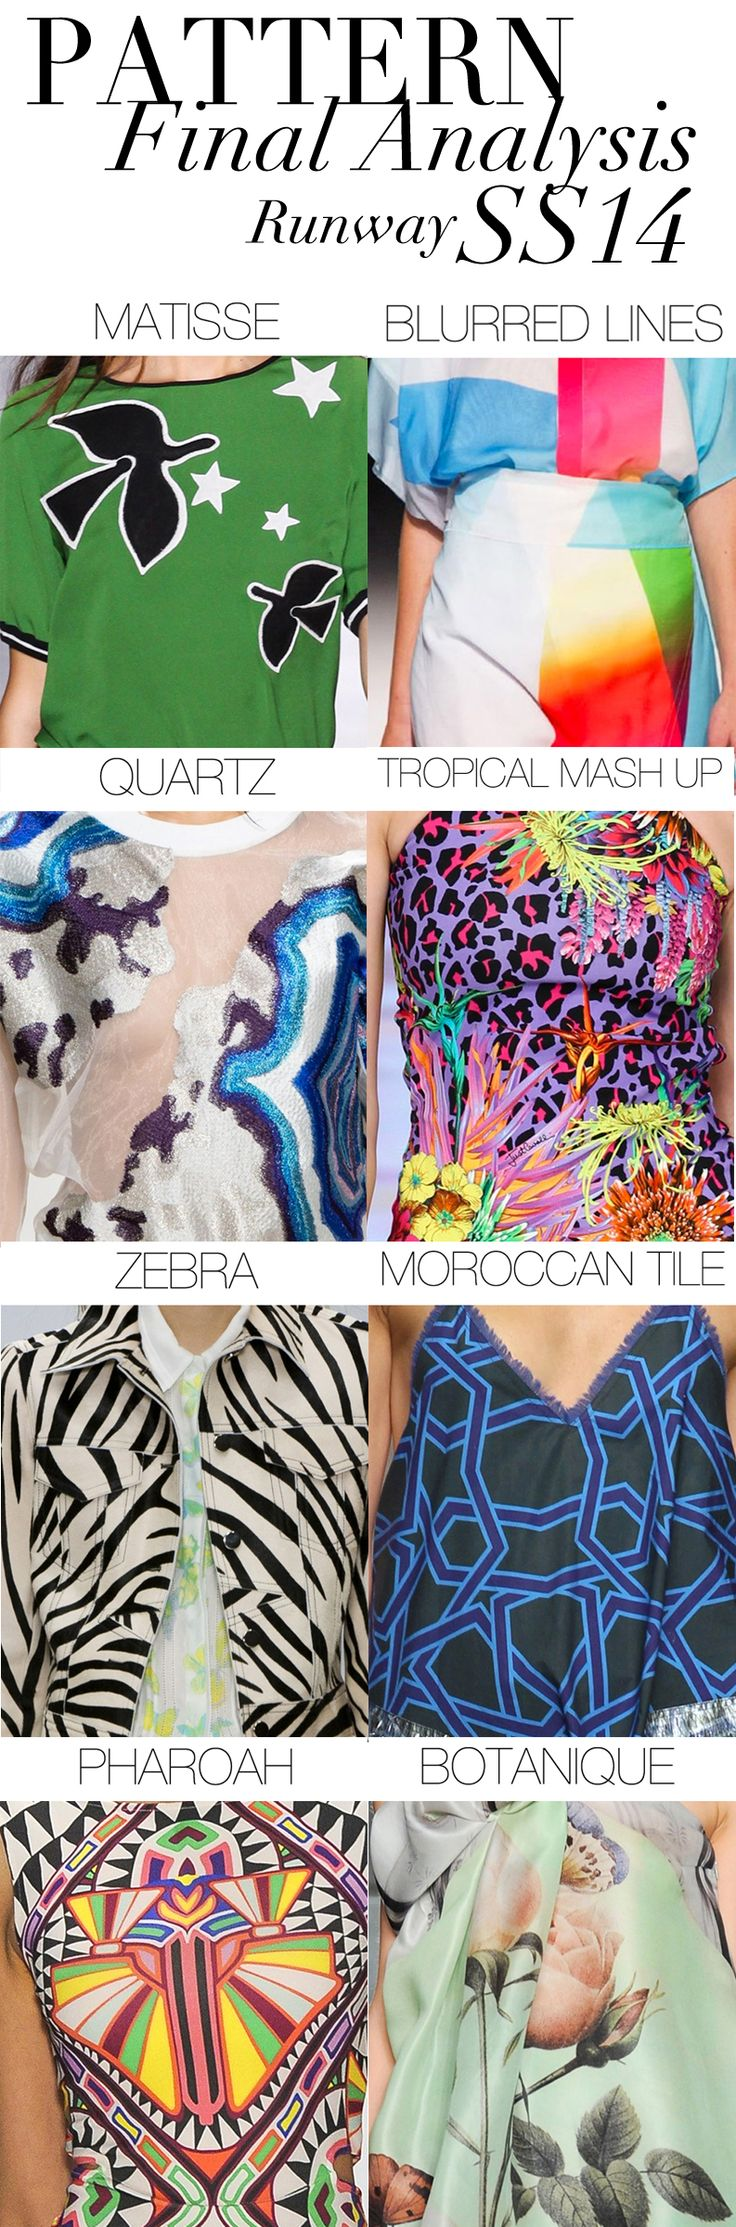 TREND COUNCIL SS 2014 PATTERN DIRECTION